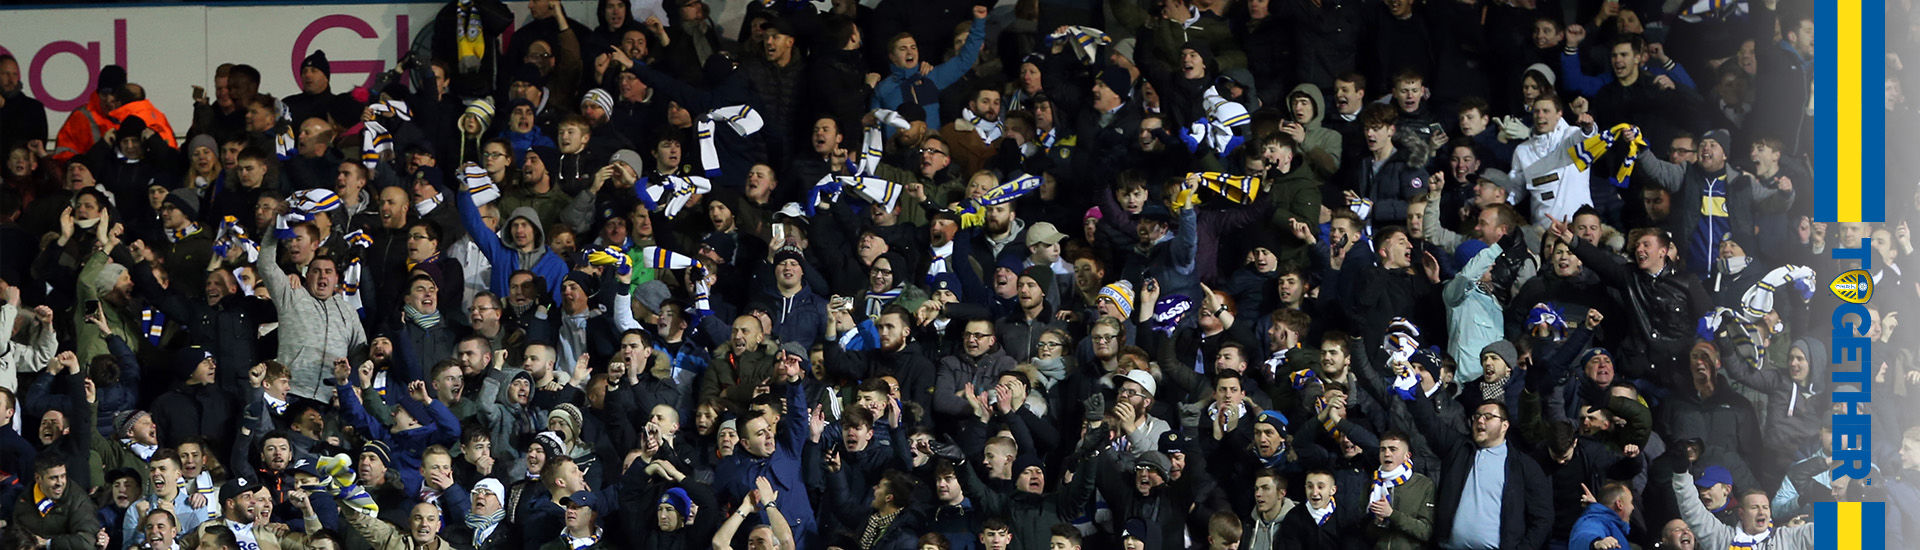 CARDIFF CITY: OVER 30,000 TICKETS SOLD